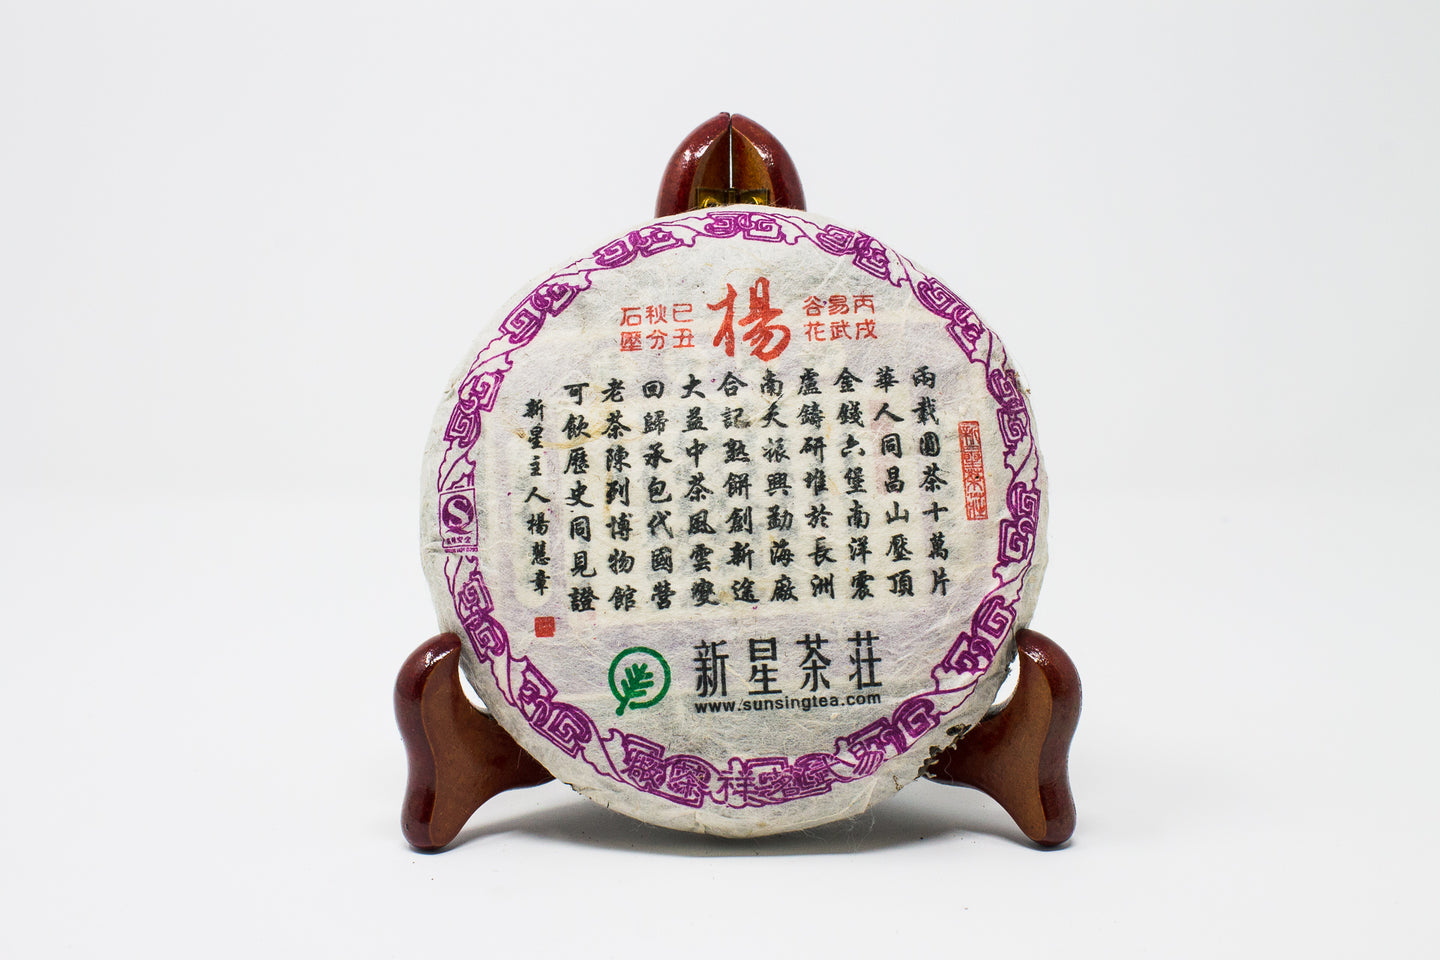 2006 Yiwu Huang Tian Mini Teacake 易武荒田小餅(秋) - Sunsing tea